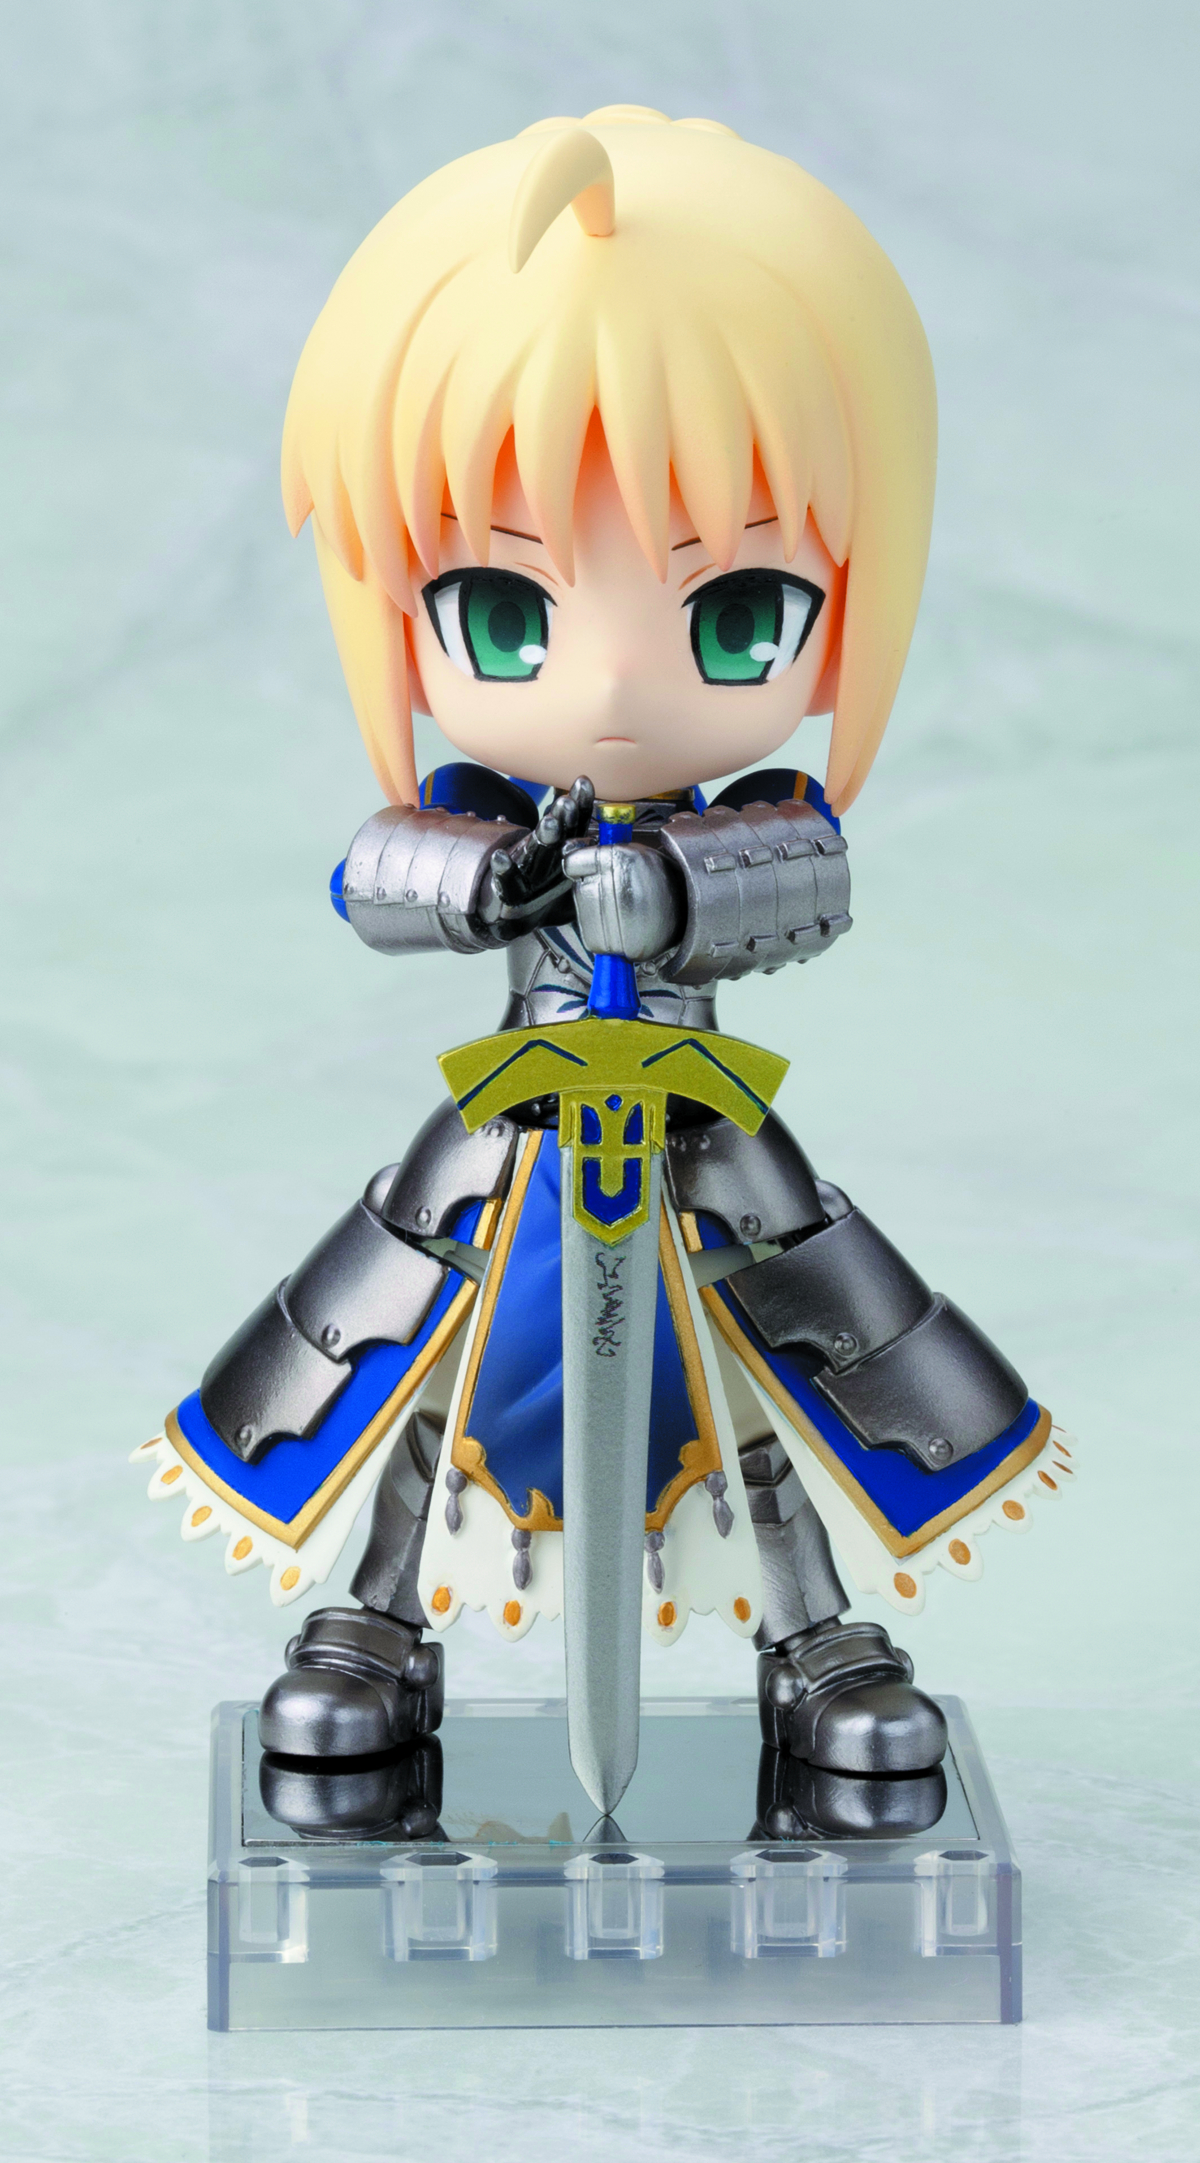 FATE/STAY NIGHT SABER CU-POCHE FIG